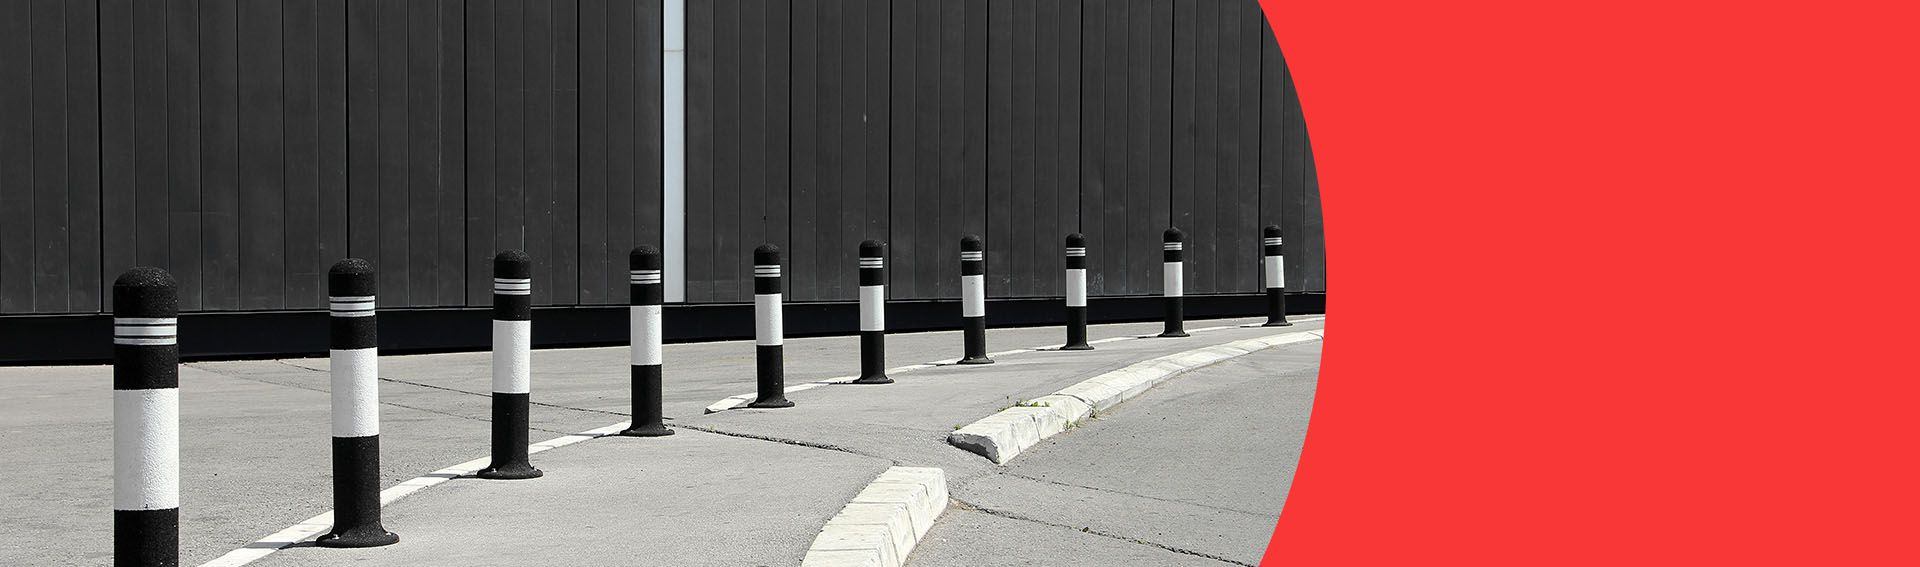 Chain Gate Barrier, Automatic Chain Gate Barrier - Image